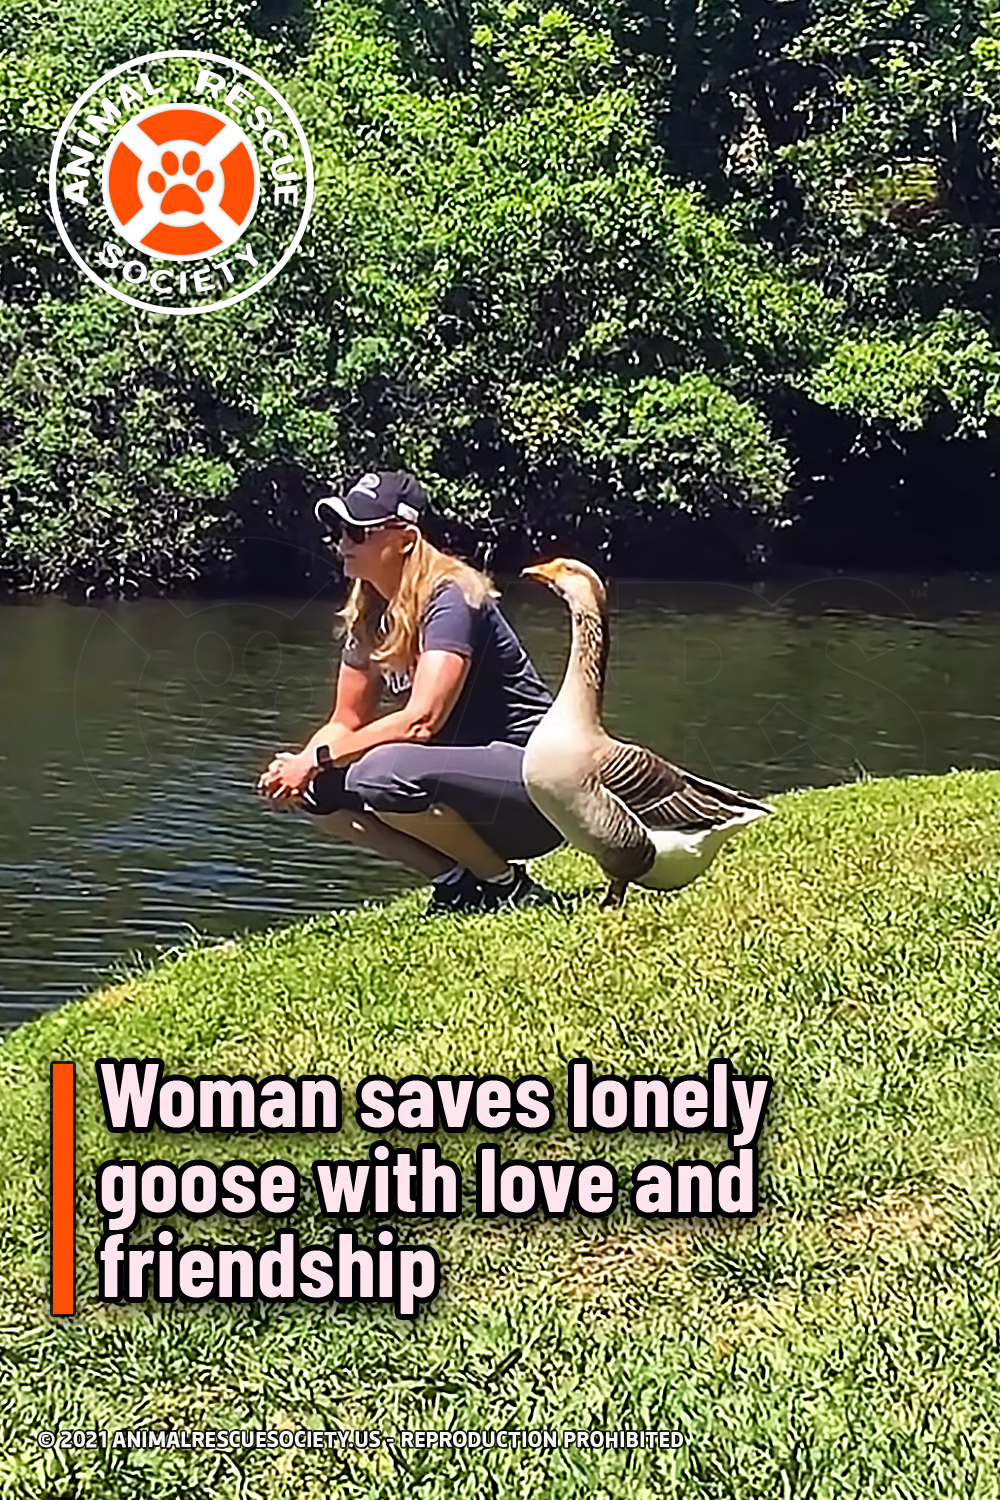 Woman saves lonely goose with love and friendship